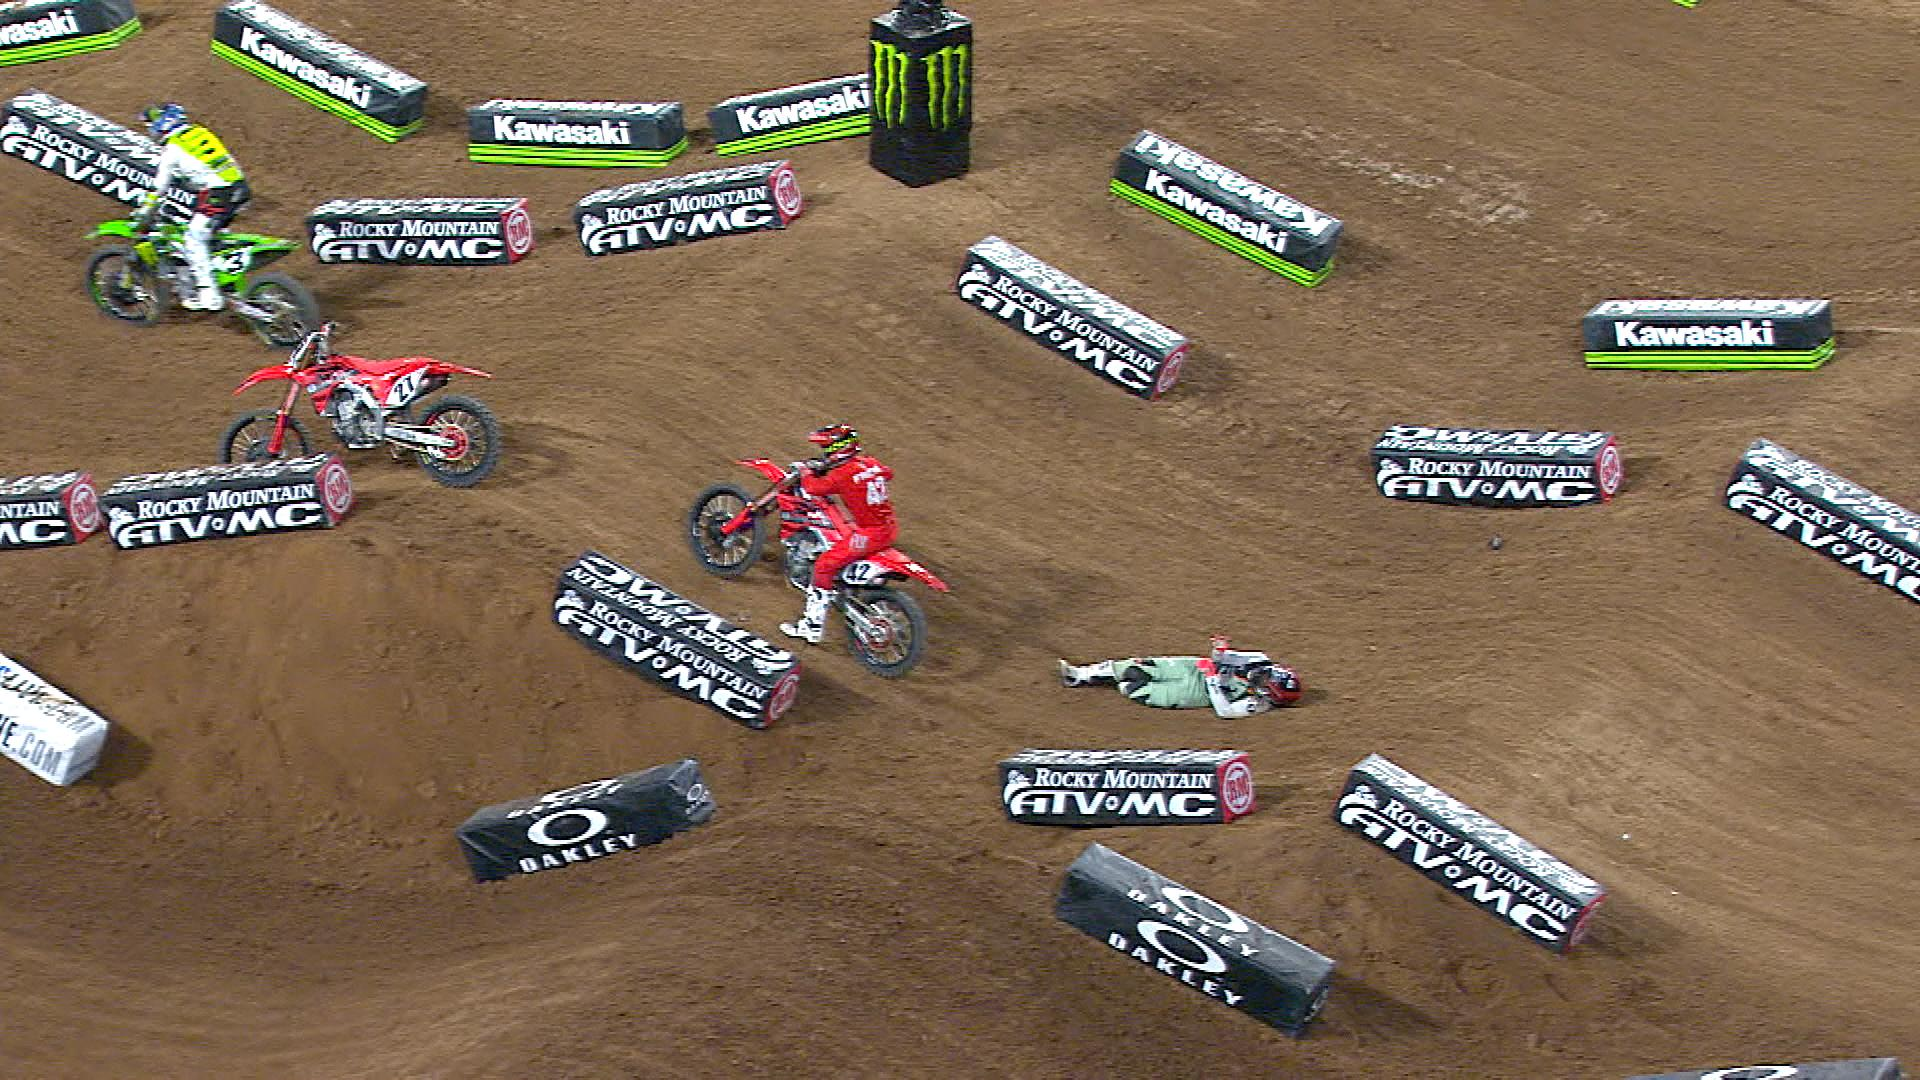 Malcolm Stewart Flips Over Bars In Crash In 450 Main Event